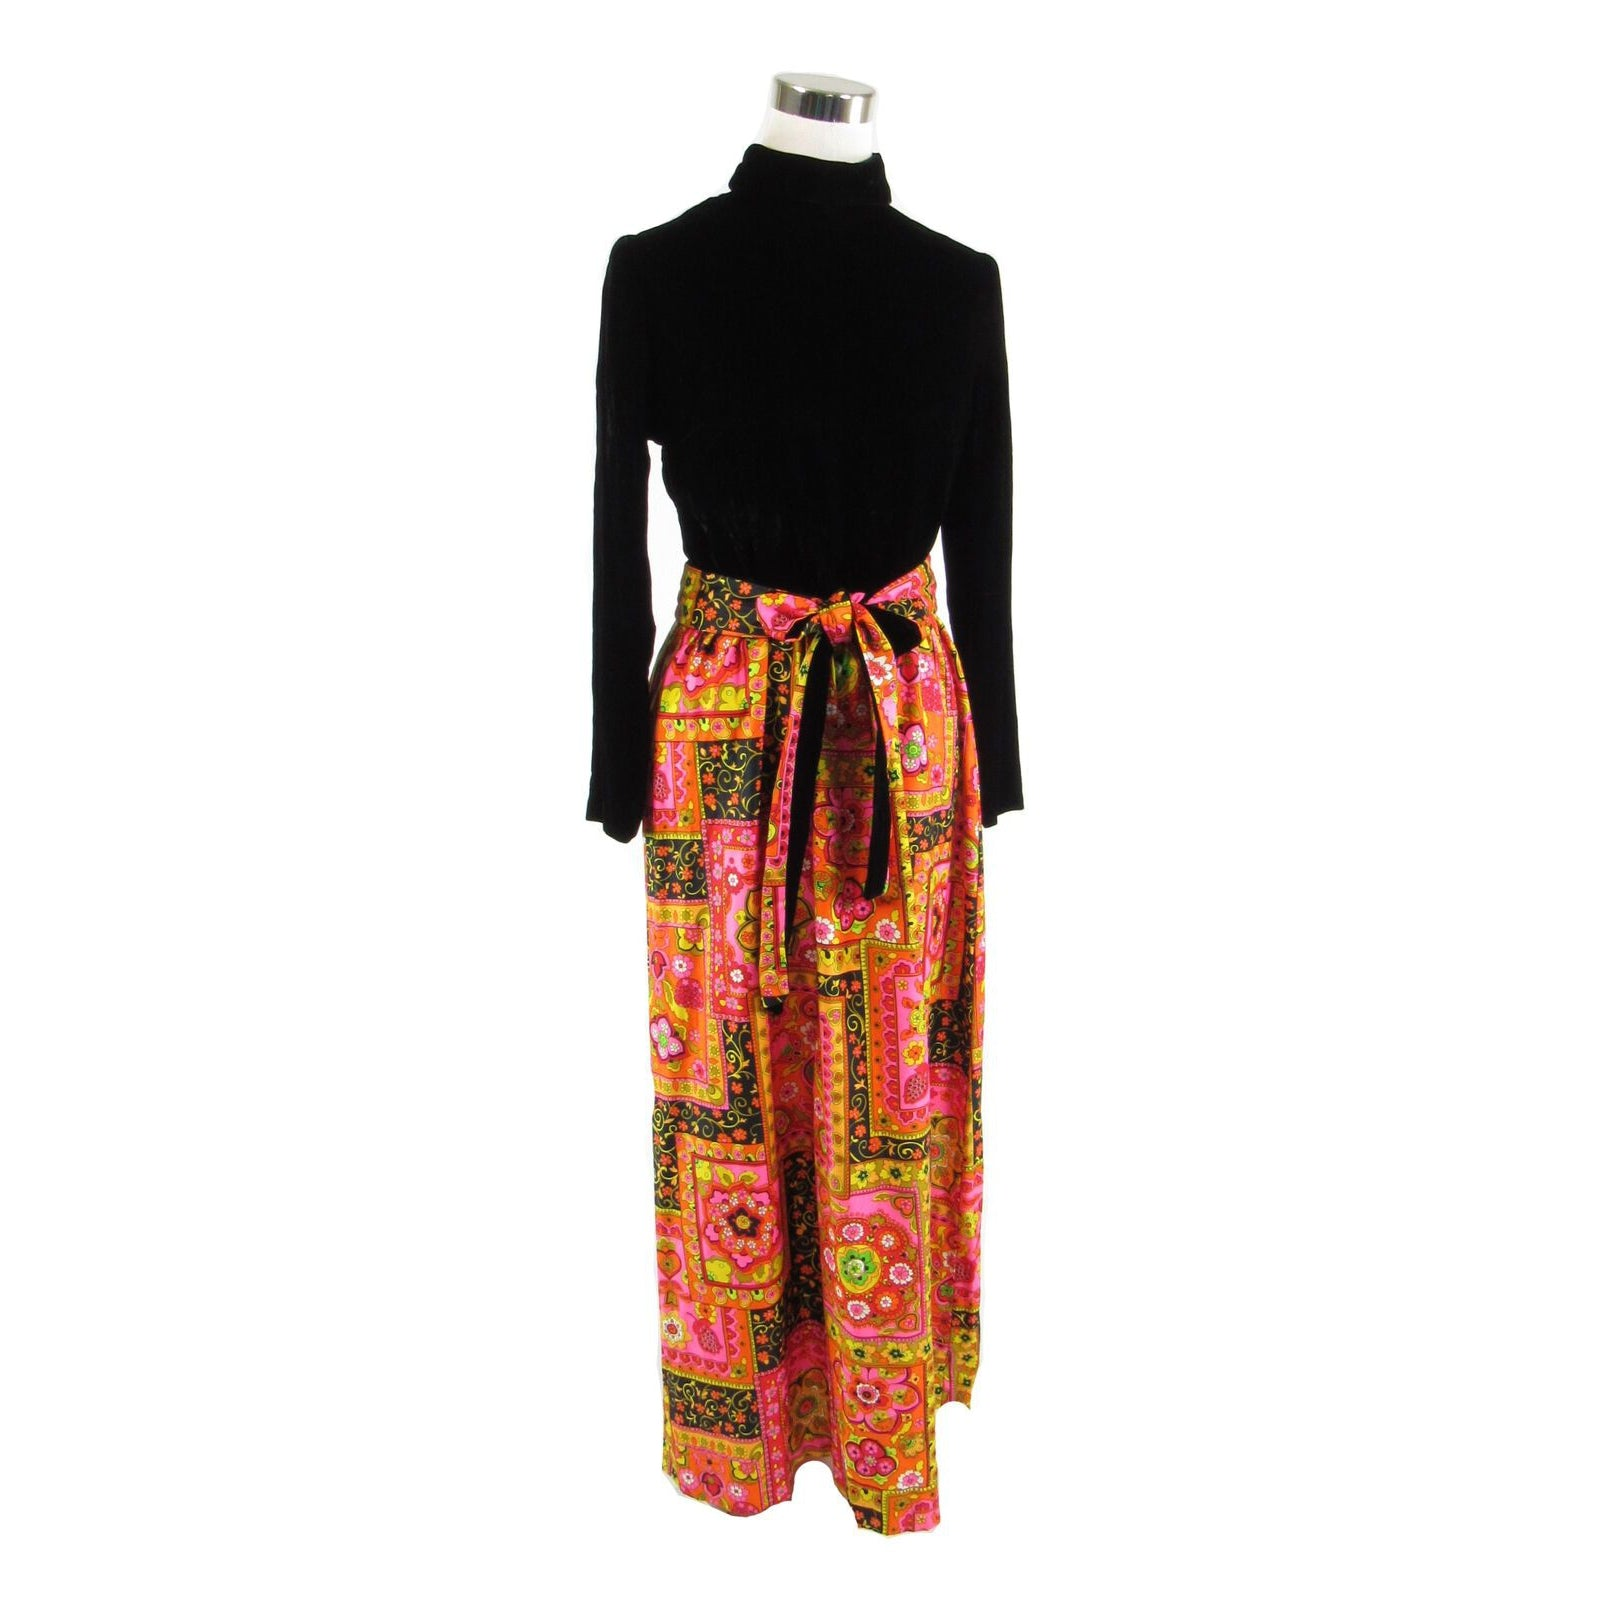 Black orange geometric long sleeve vintage maxi dress S